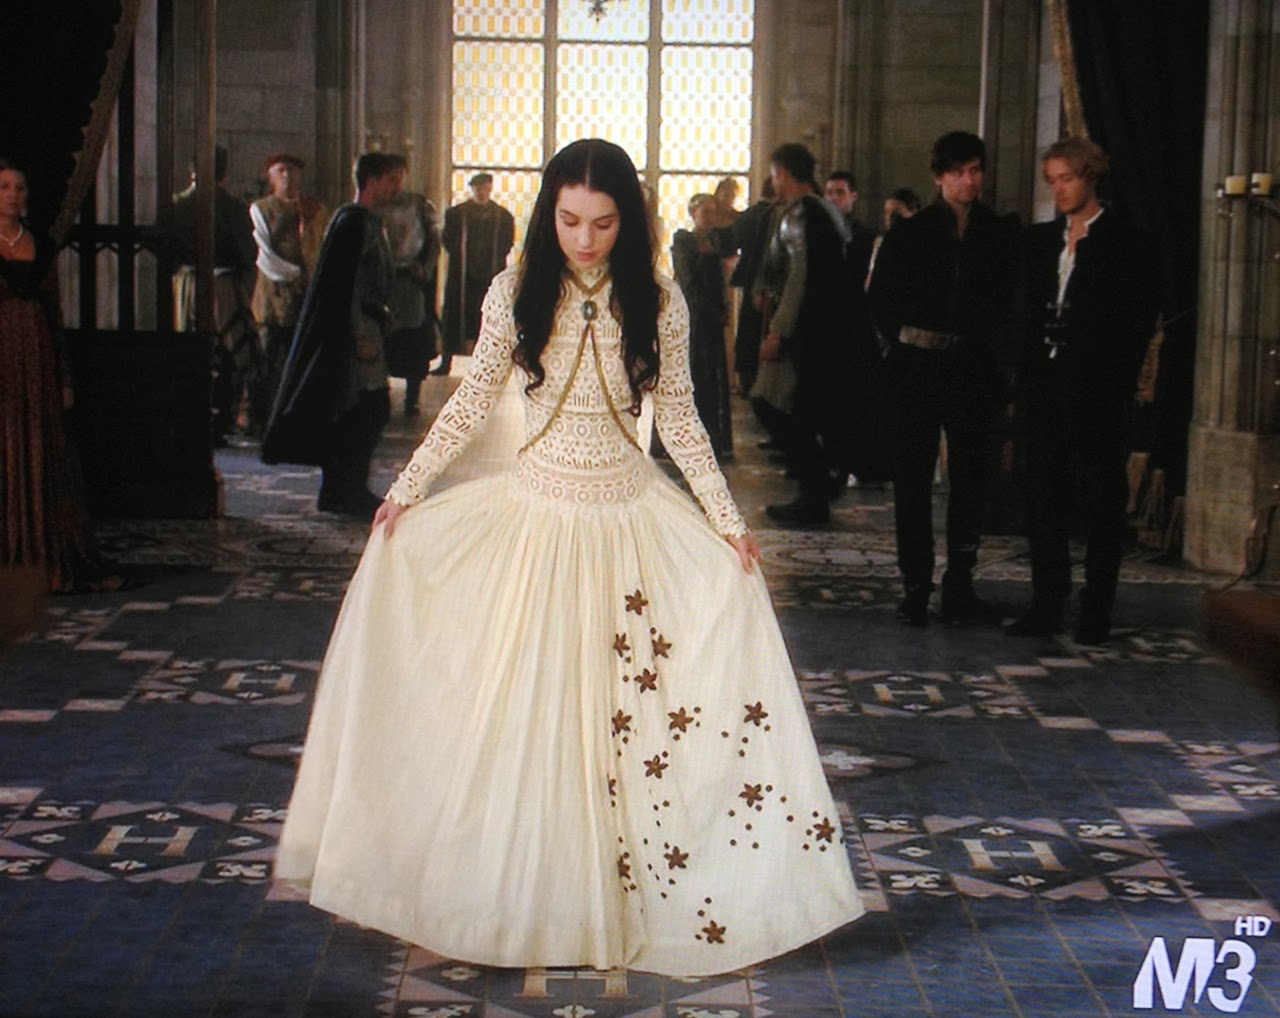 Dolorous Dolorous Jewelry On Reign S Mary In The New Episode,Sample Sale Wedding Dresses Uk